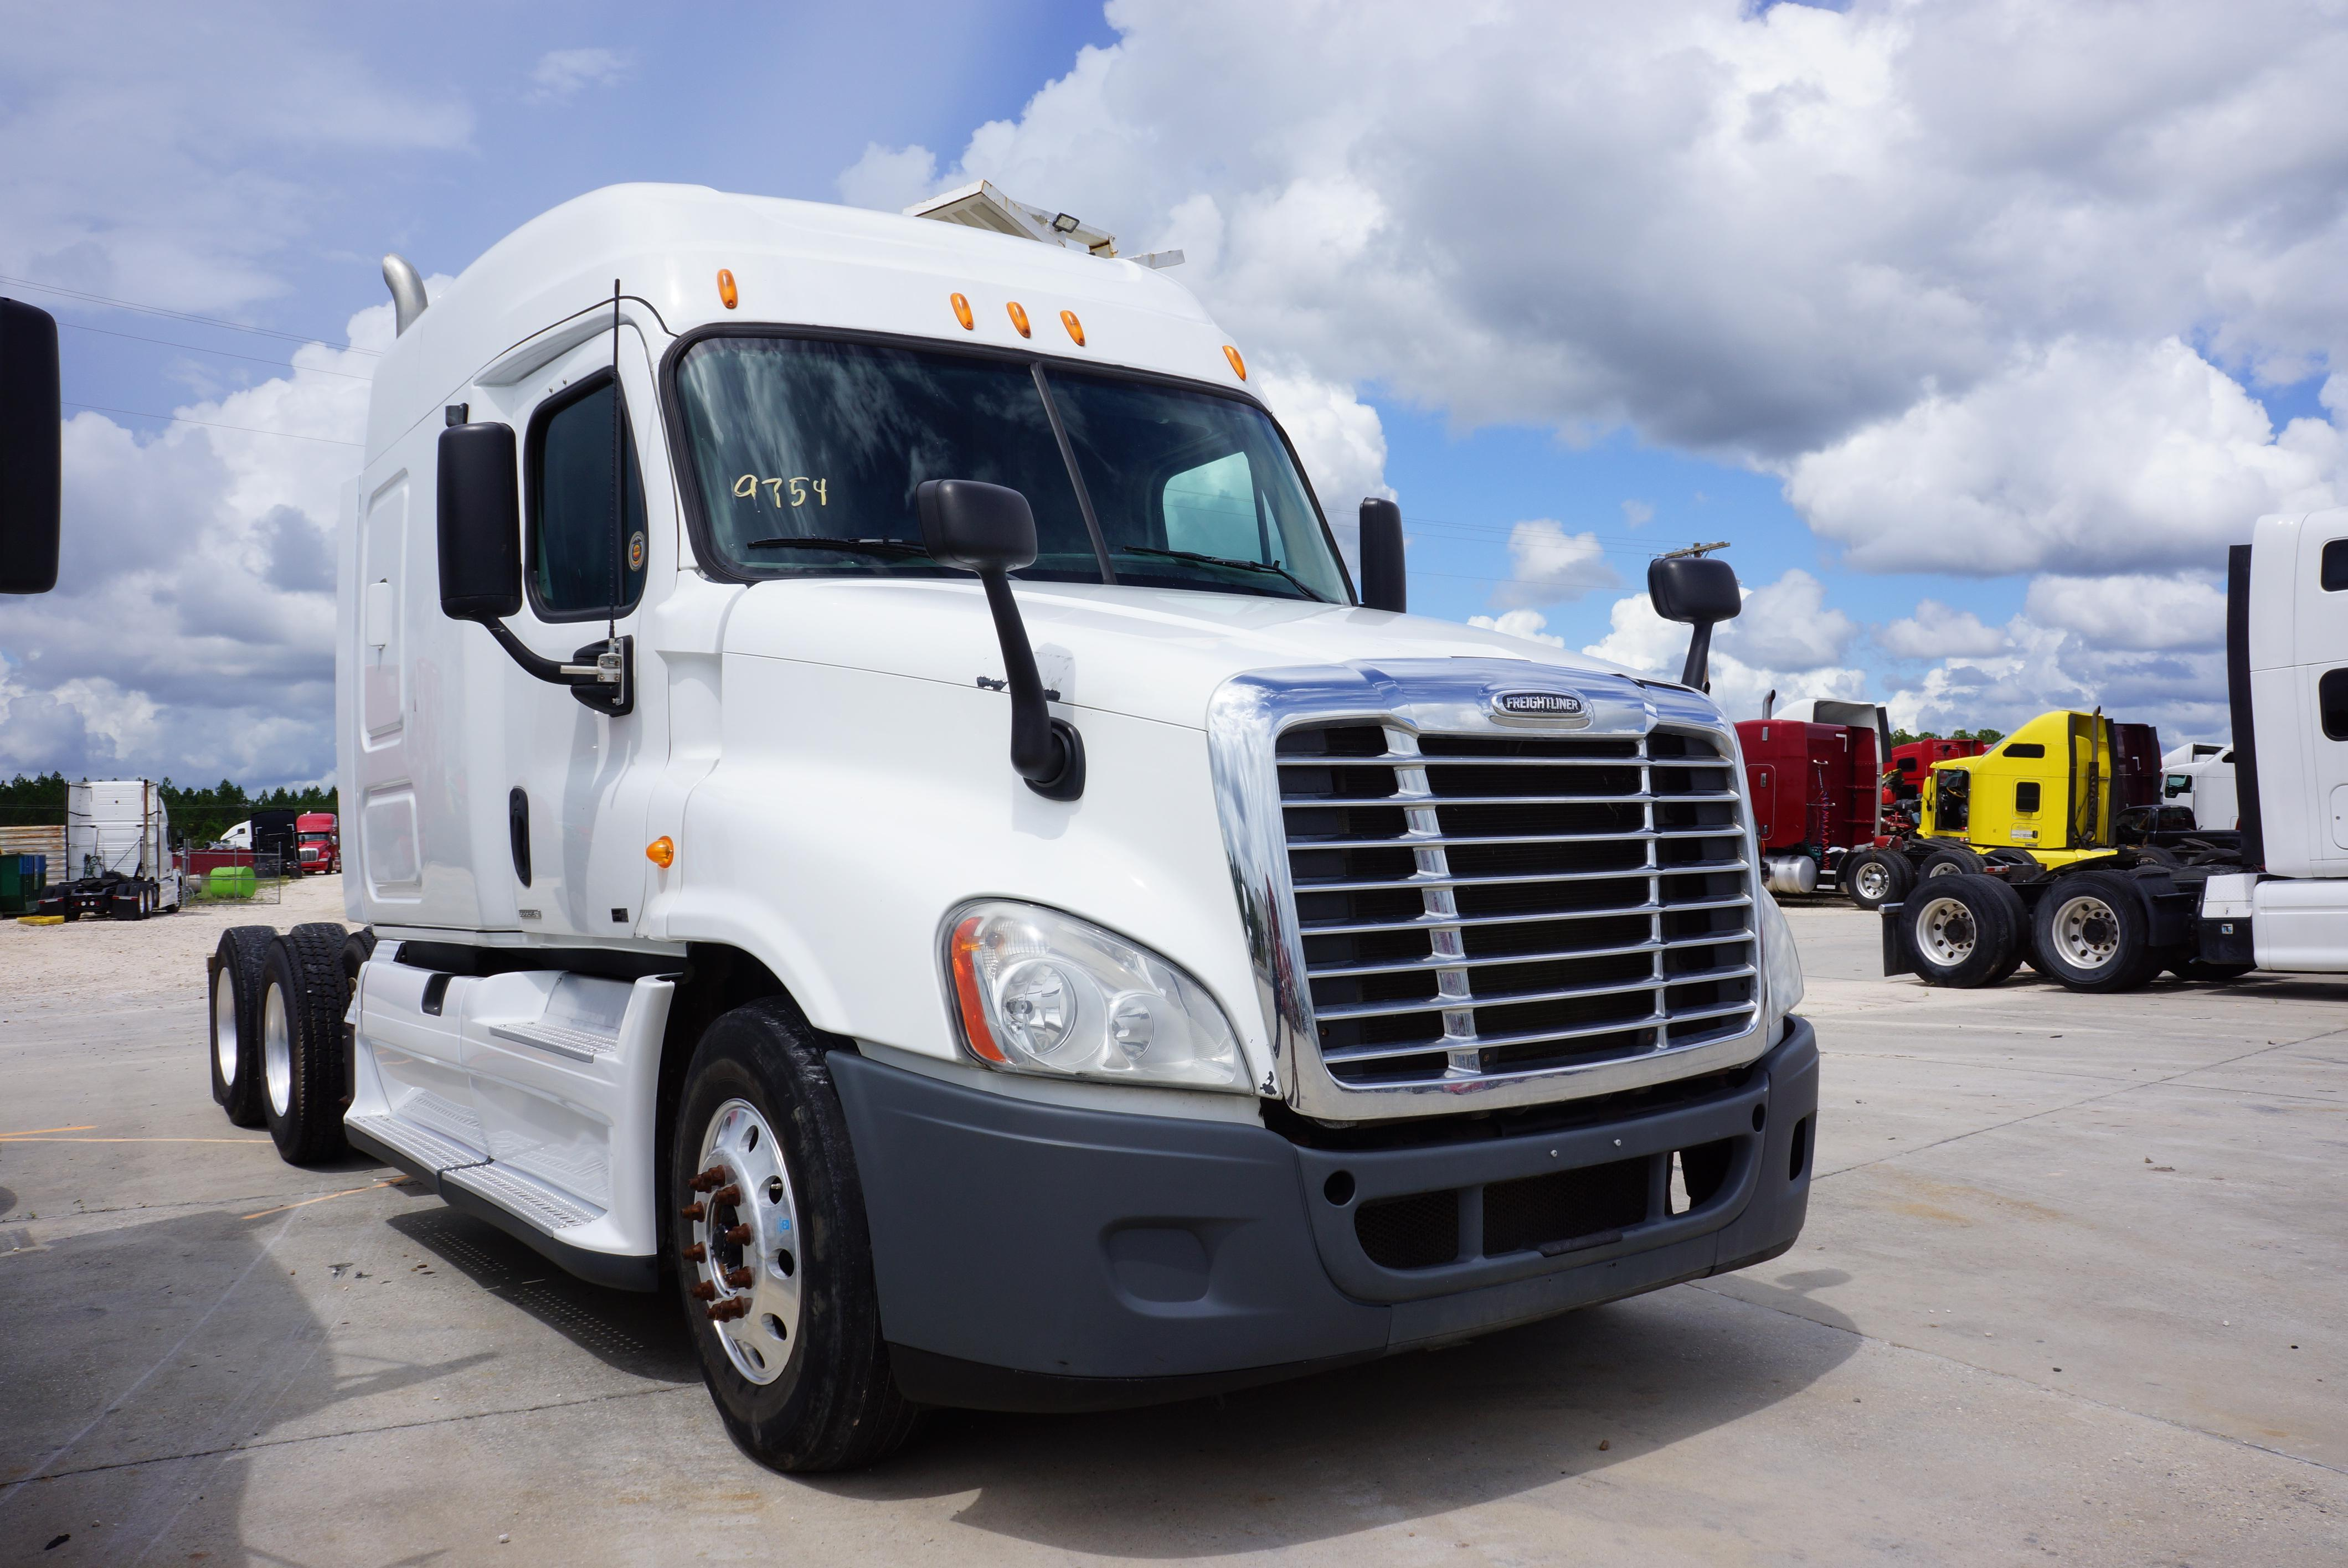 USED 2011 FREIGHTLINER CASCADIA SLEEPER TRUCK #86927